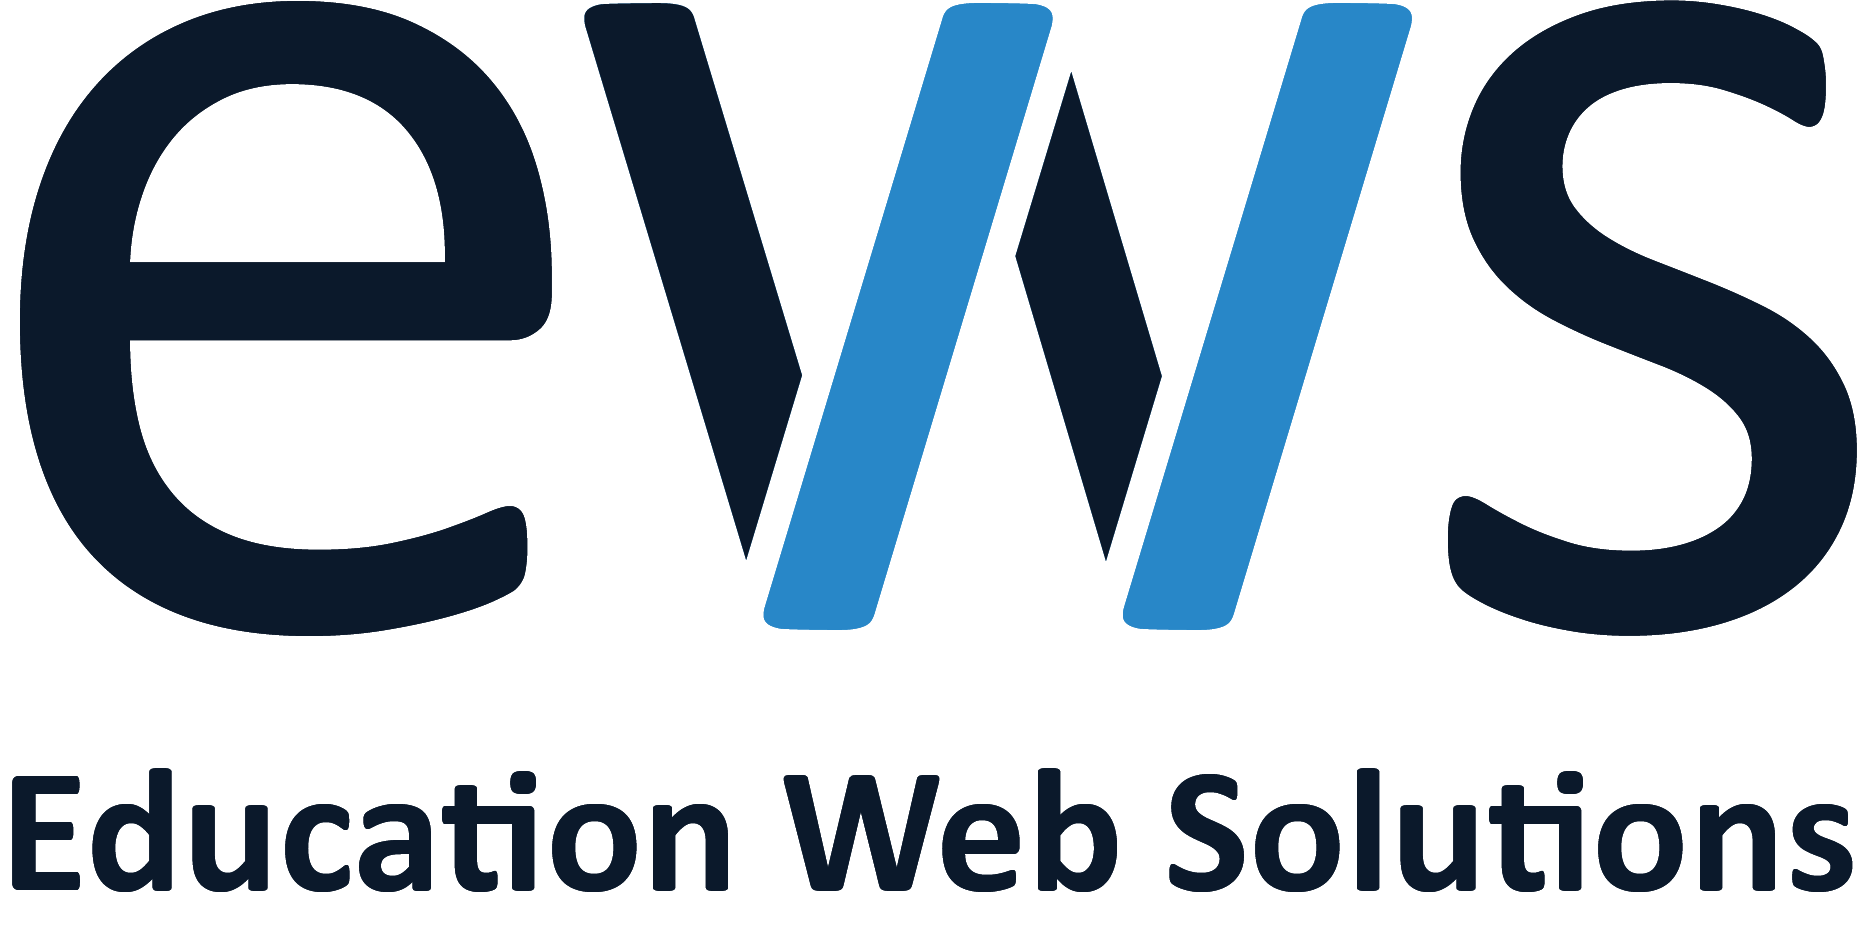 Edu Web Solutions logo